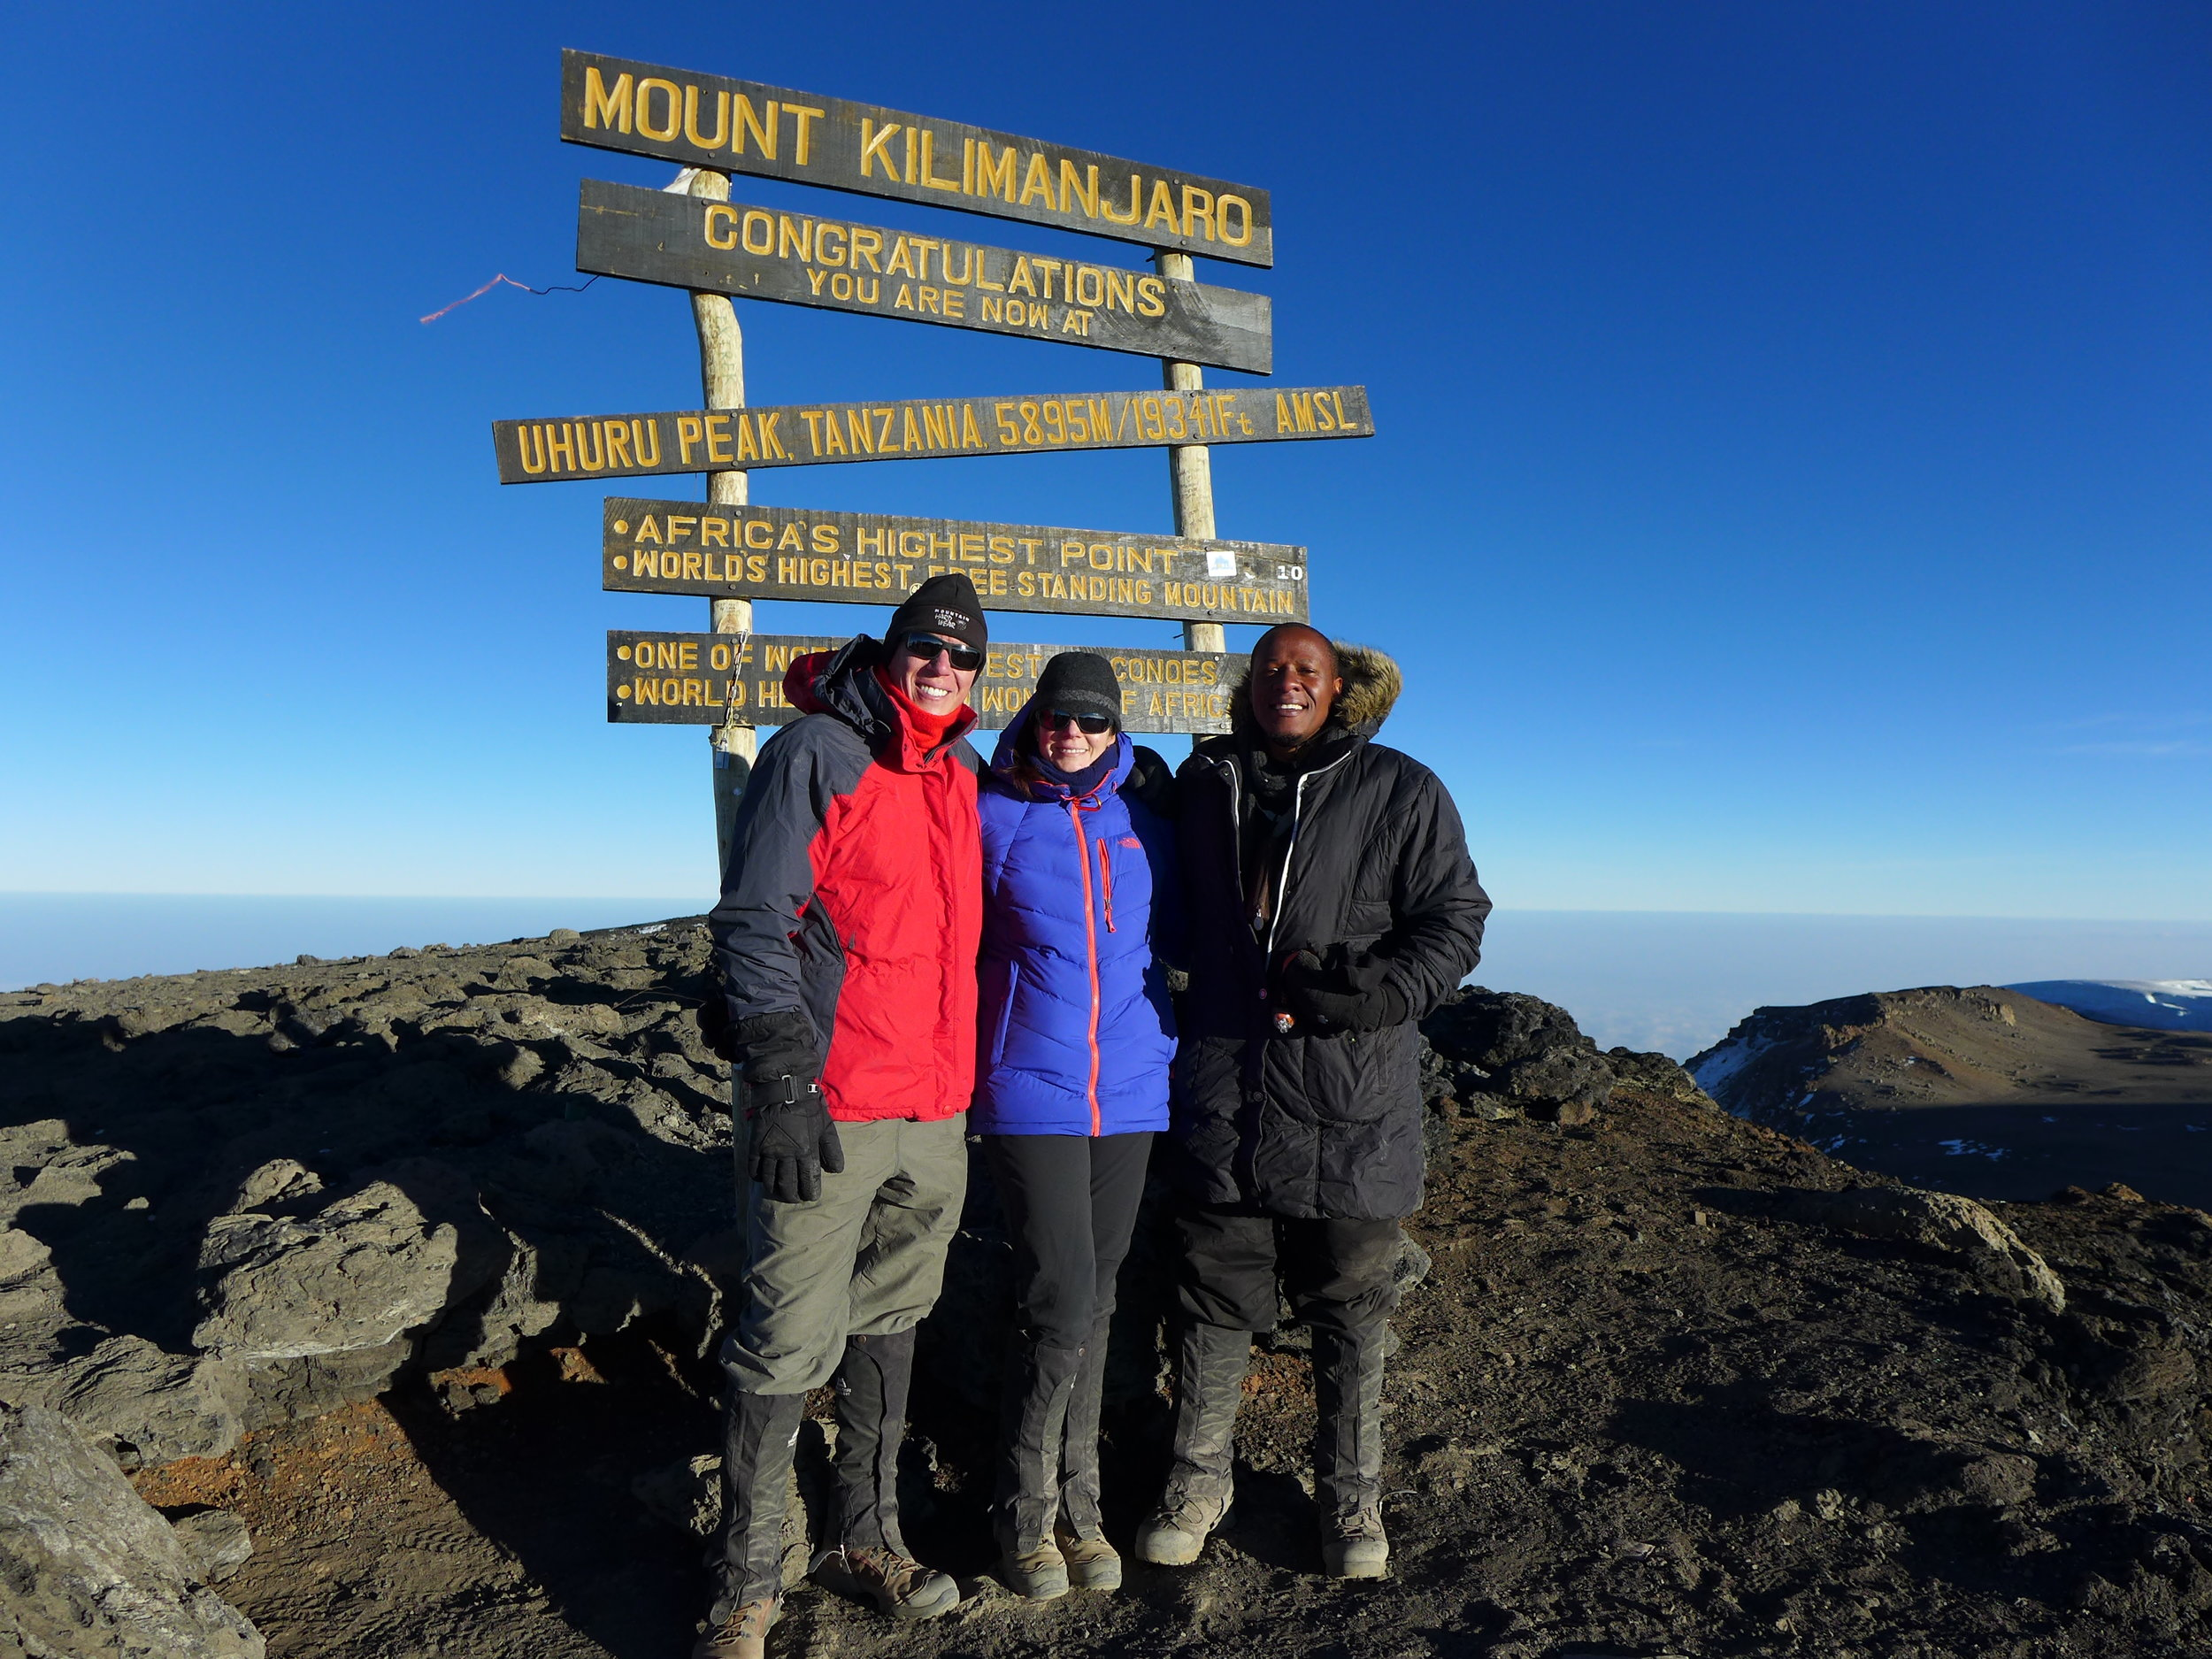 Sandi, her husband Brian Lewis, and long-time collaborator Dr. Prosper Njau at the top of Mount Kilimanjaro.